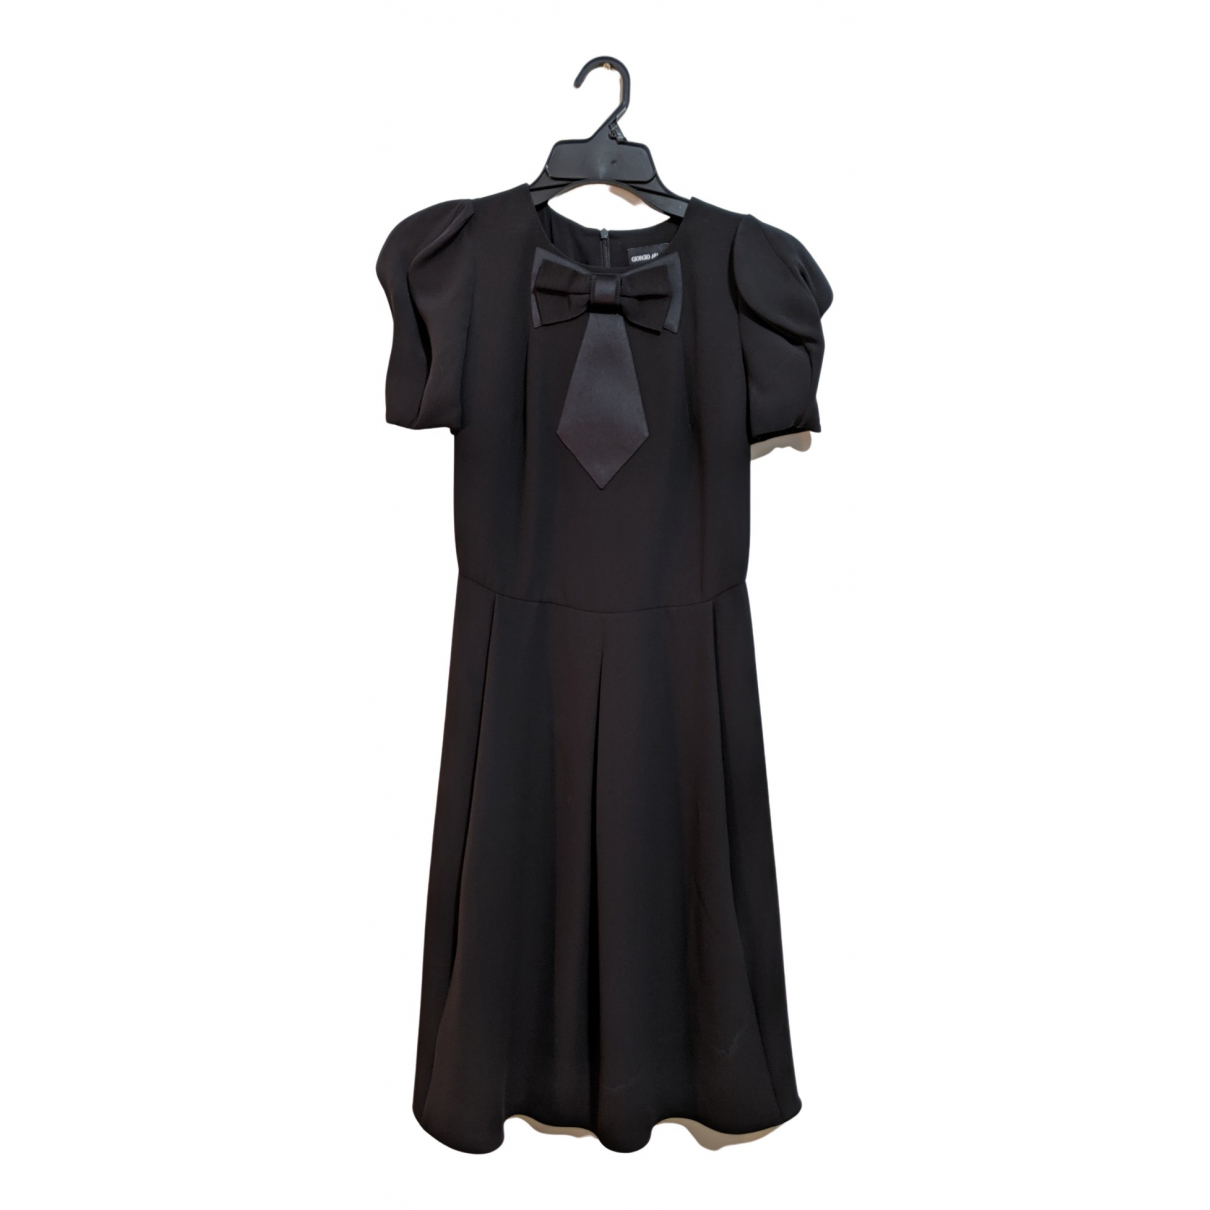 Giorgio Armani N Black Silk dress for Women 38 IT